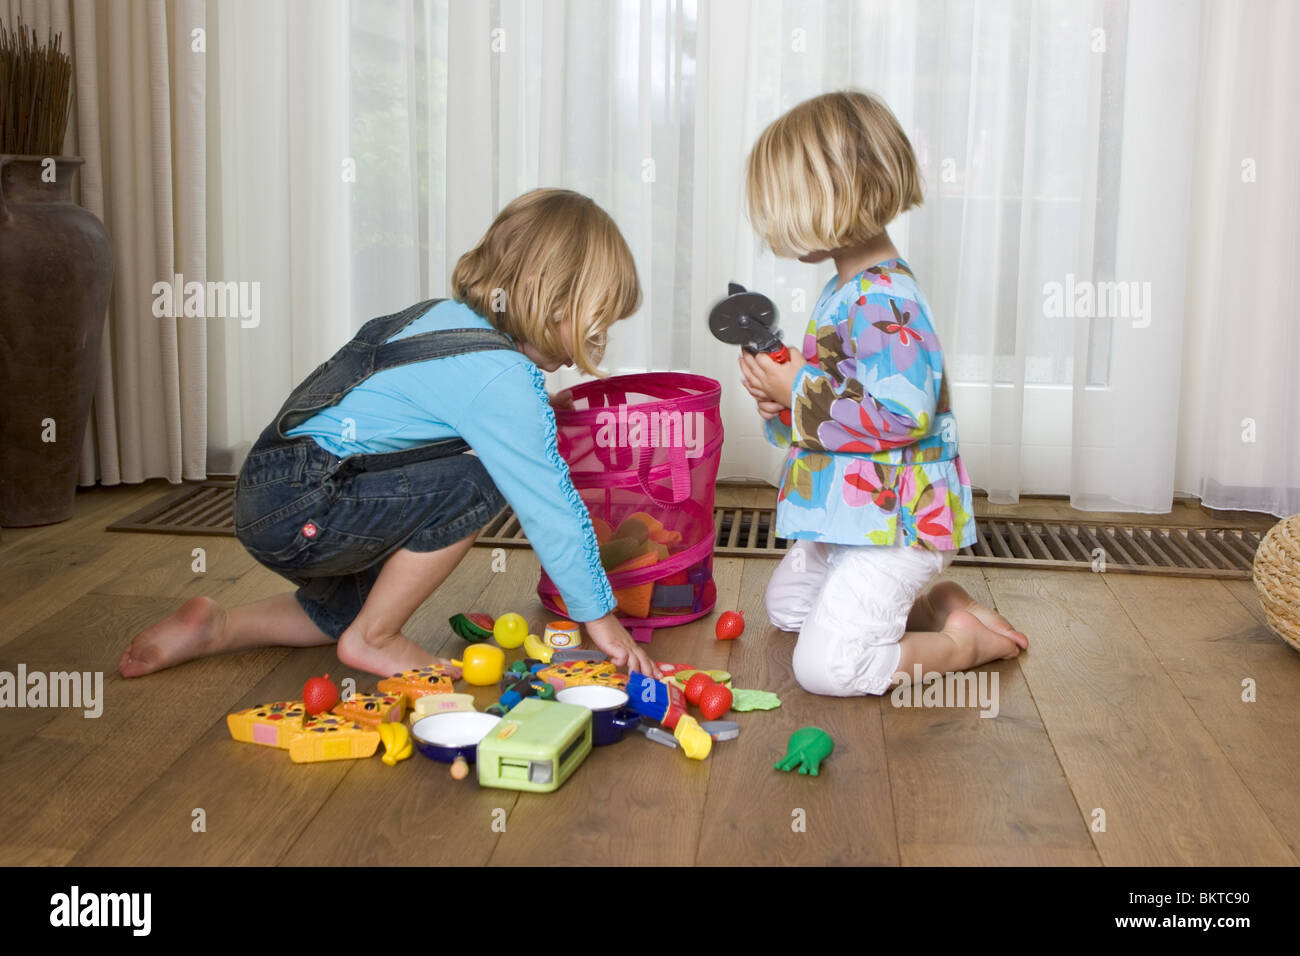 Two Girls Cleaning Up A Room